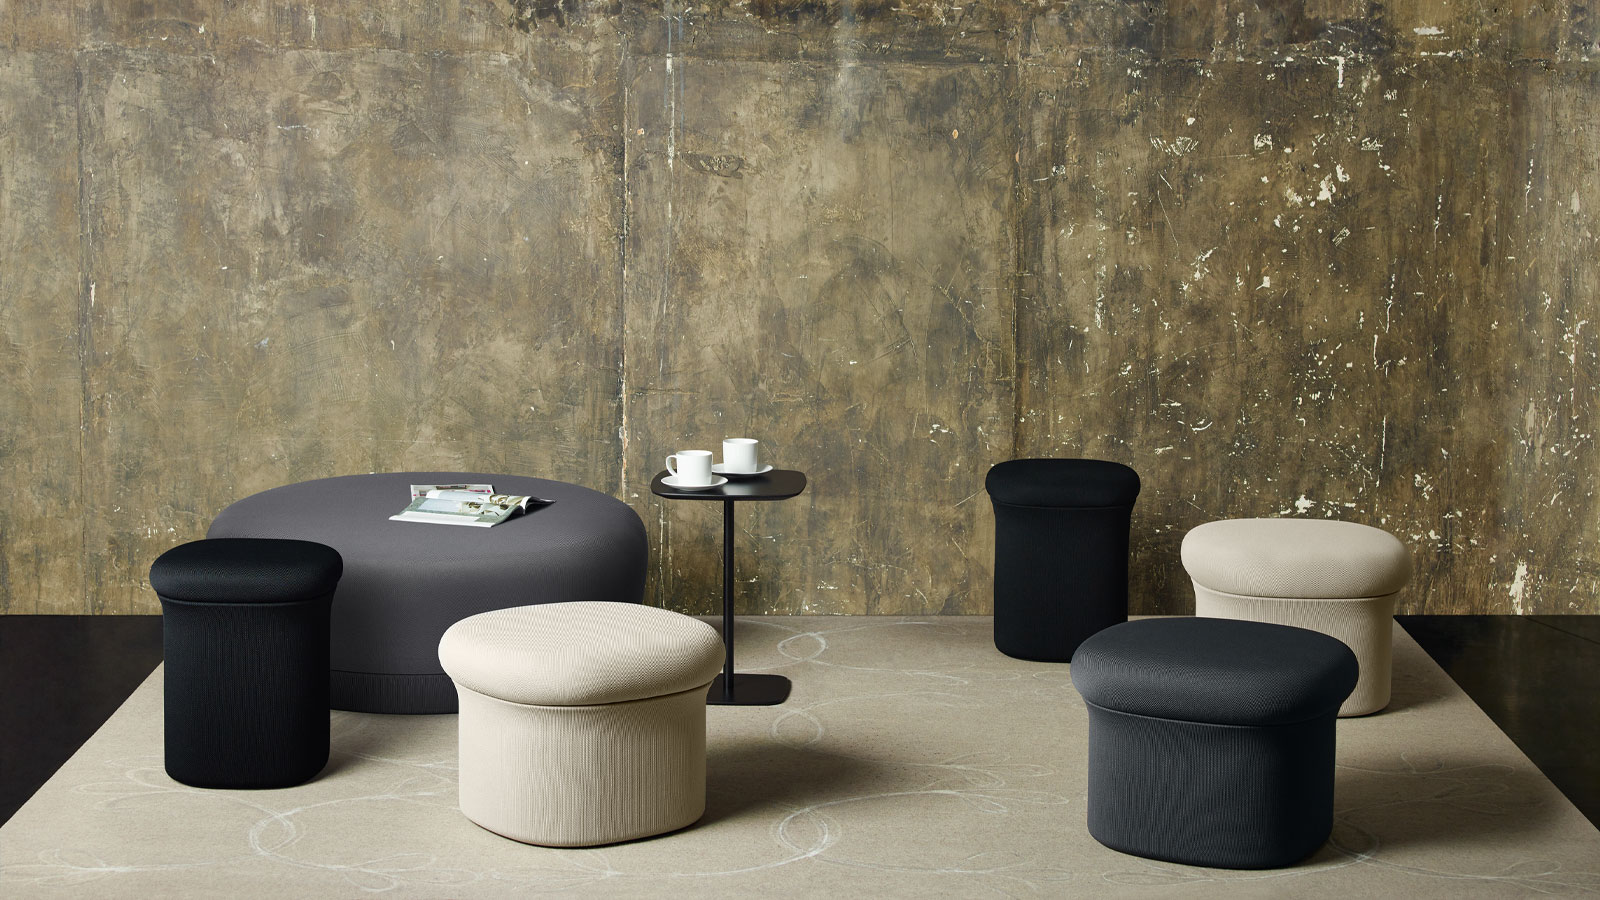 Keilhauer Doko pouffes in a display room